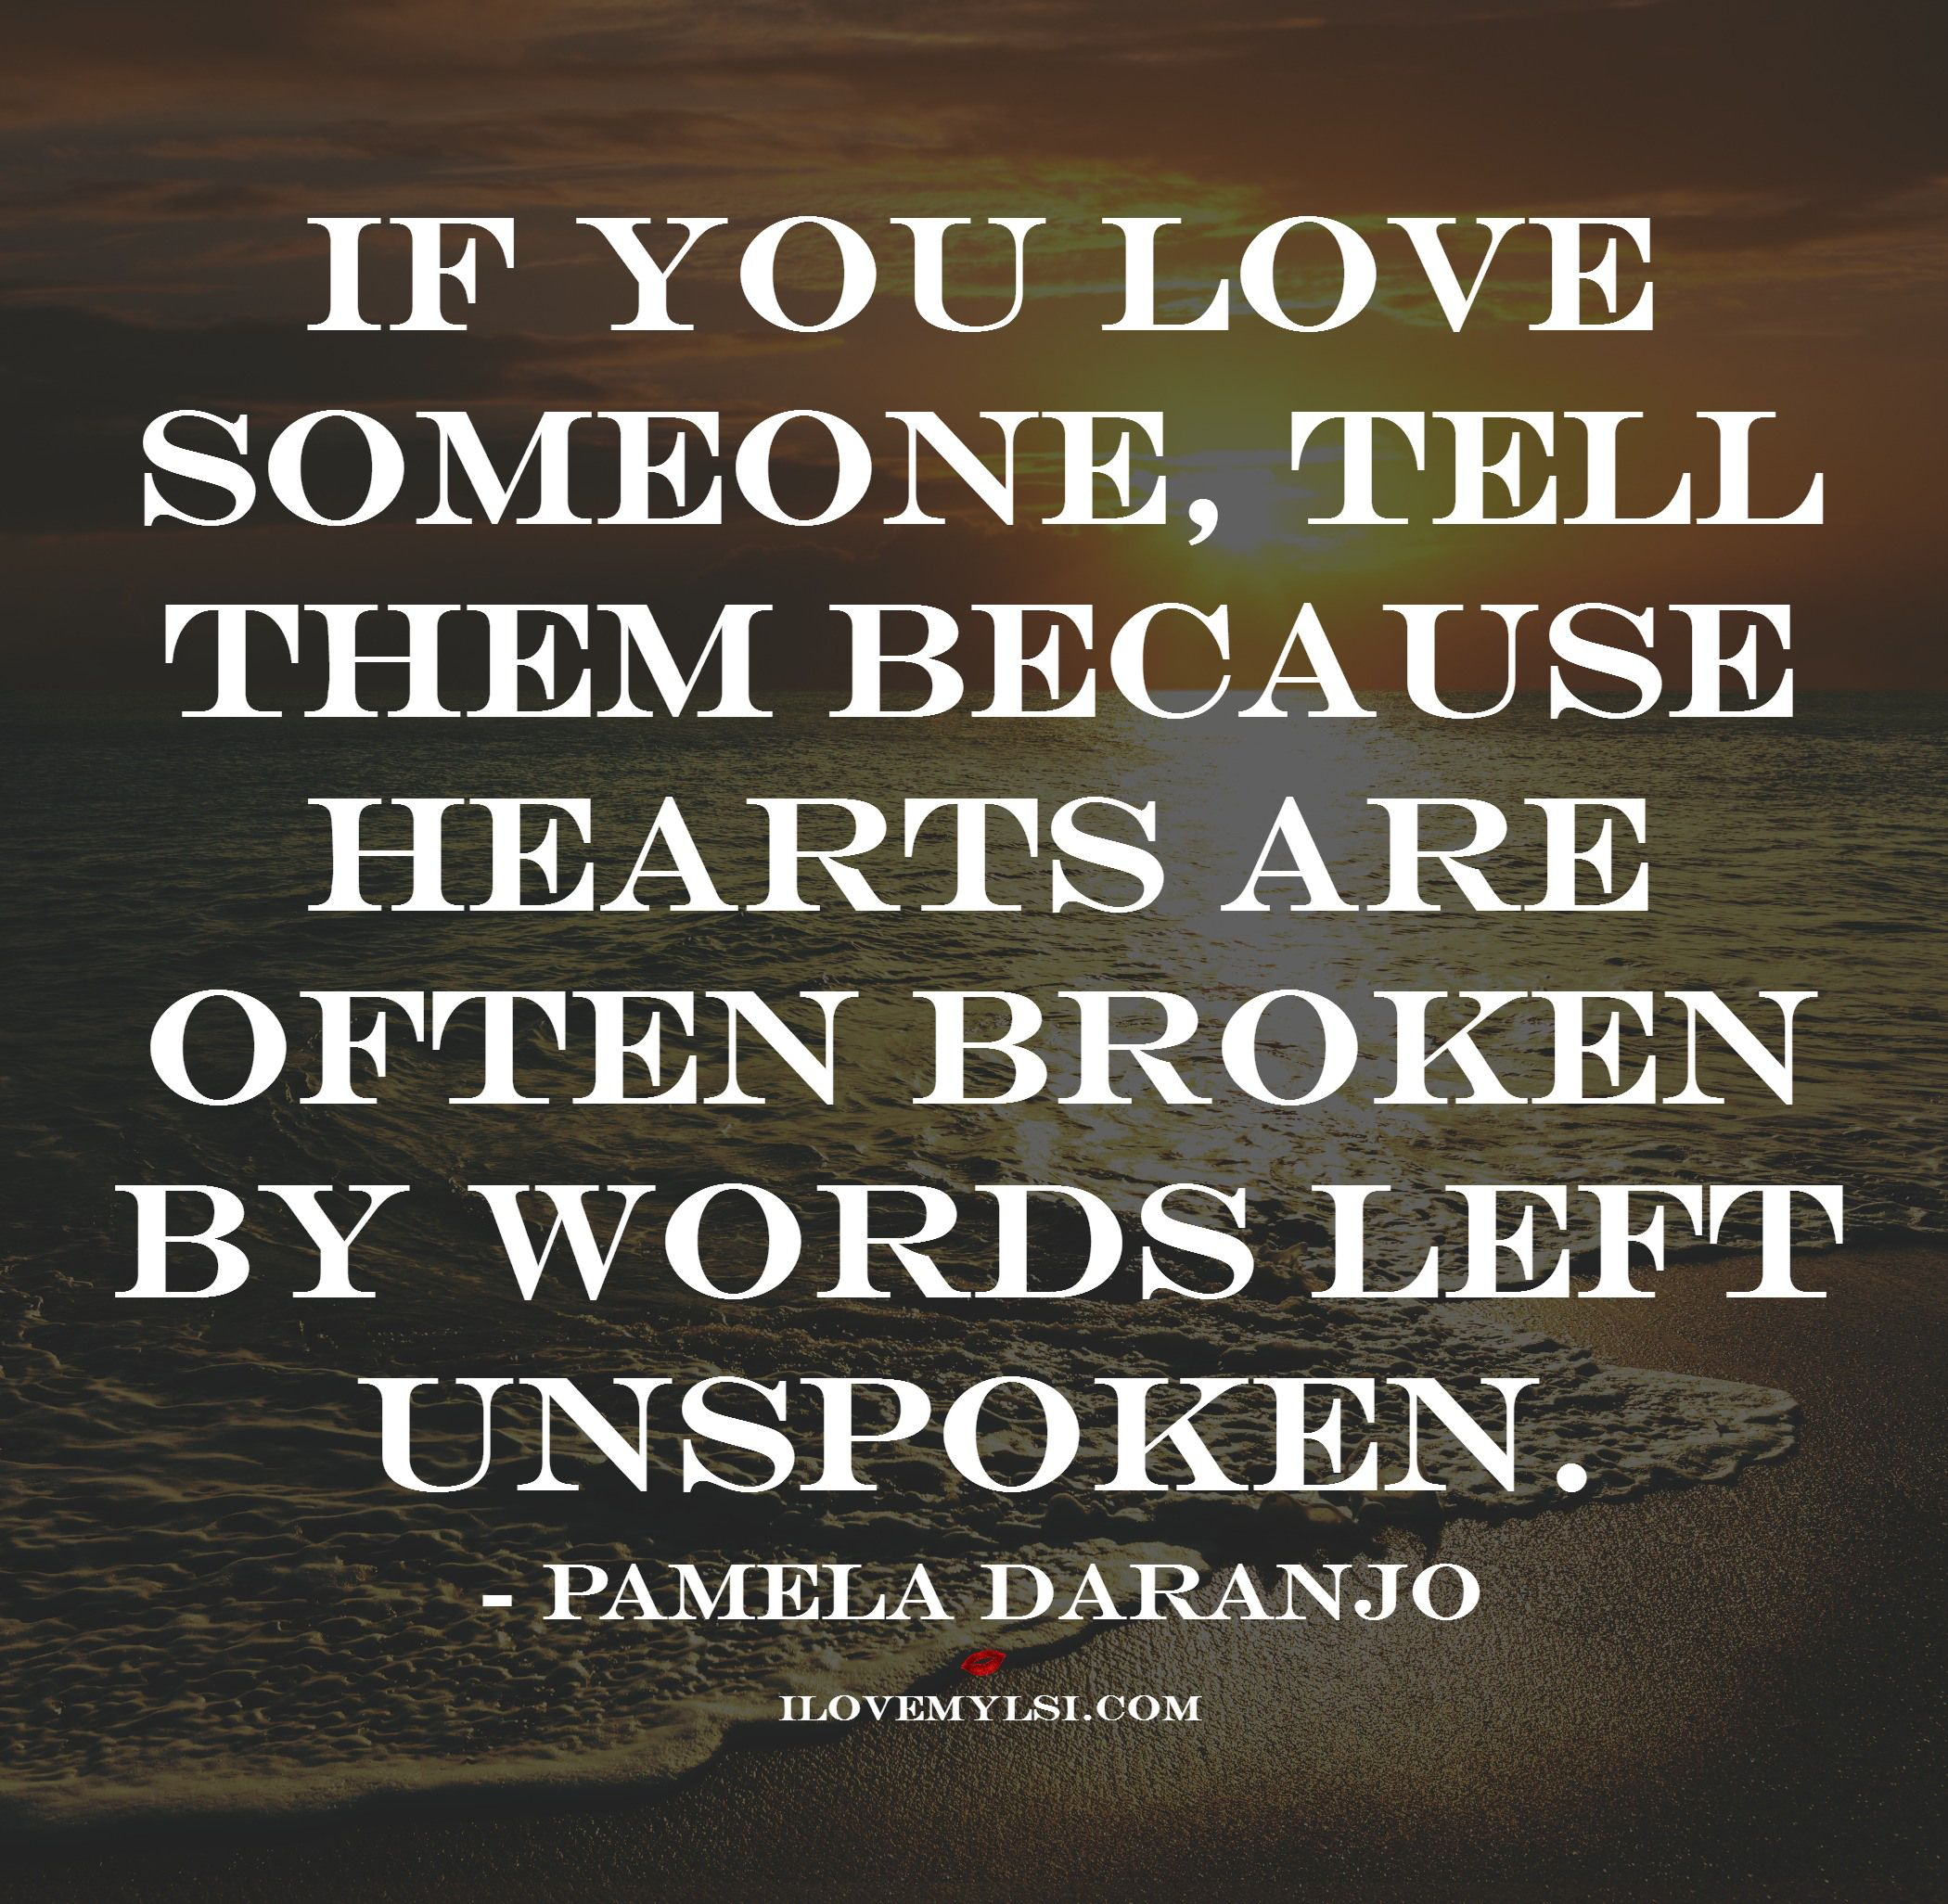 If You Love Someone, Tell Them Because Hearts Are Often